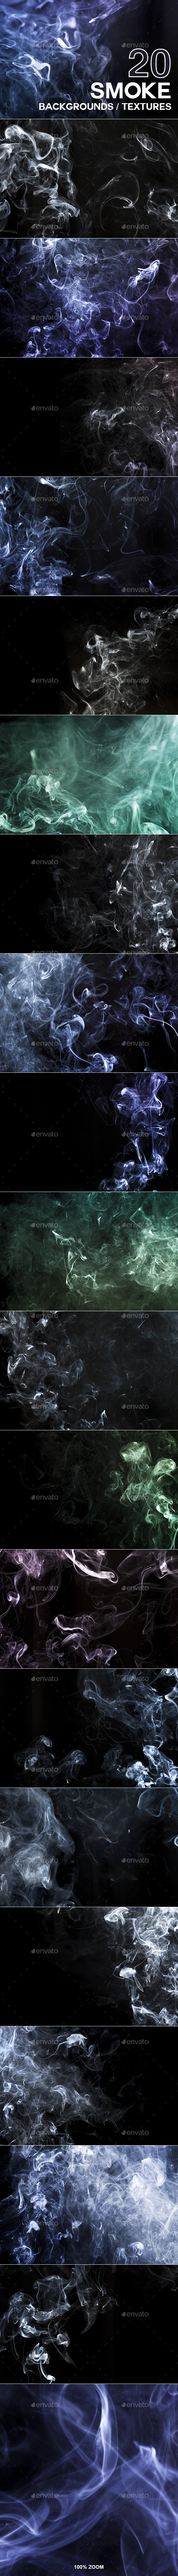 20 Smoke Backgrounds / Textures - Abstract Backgrounds